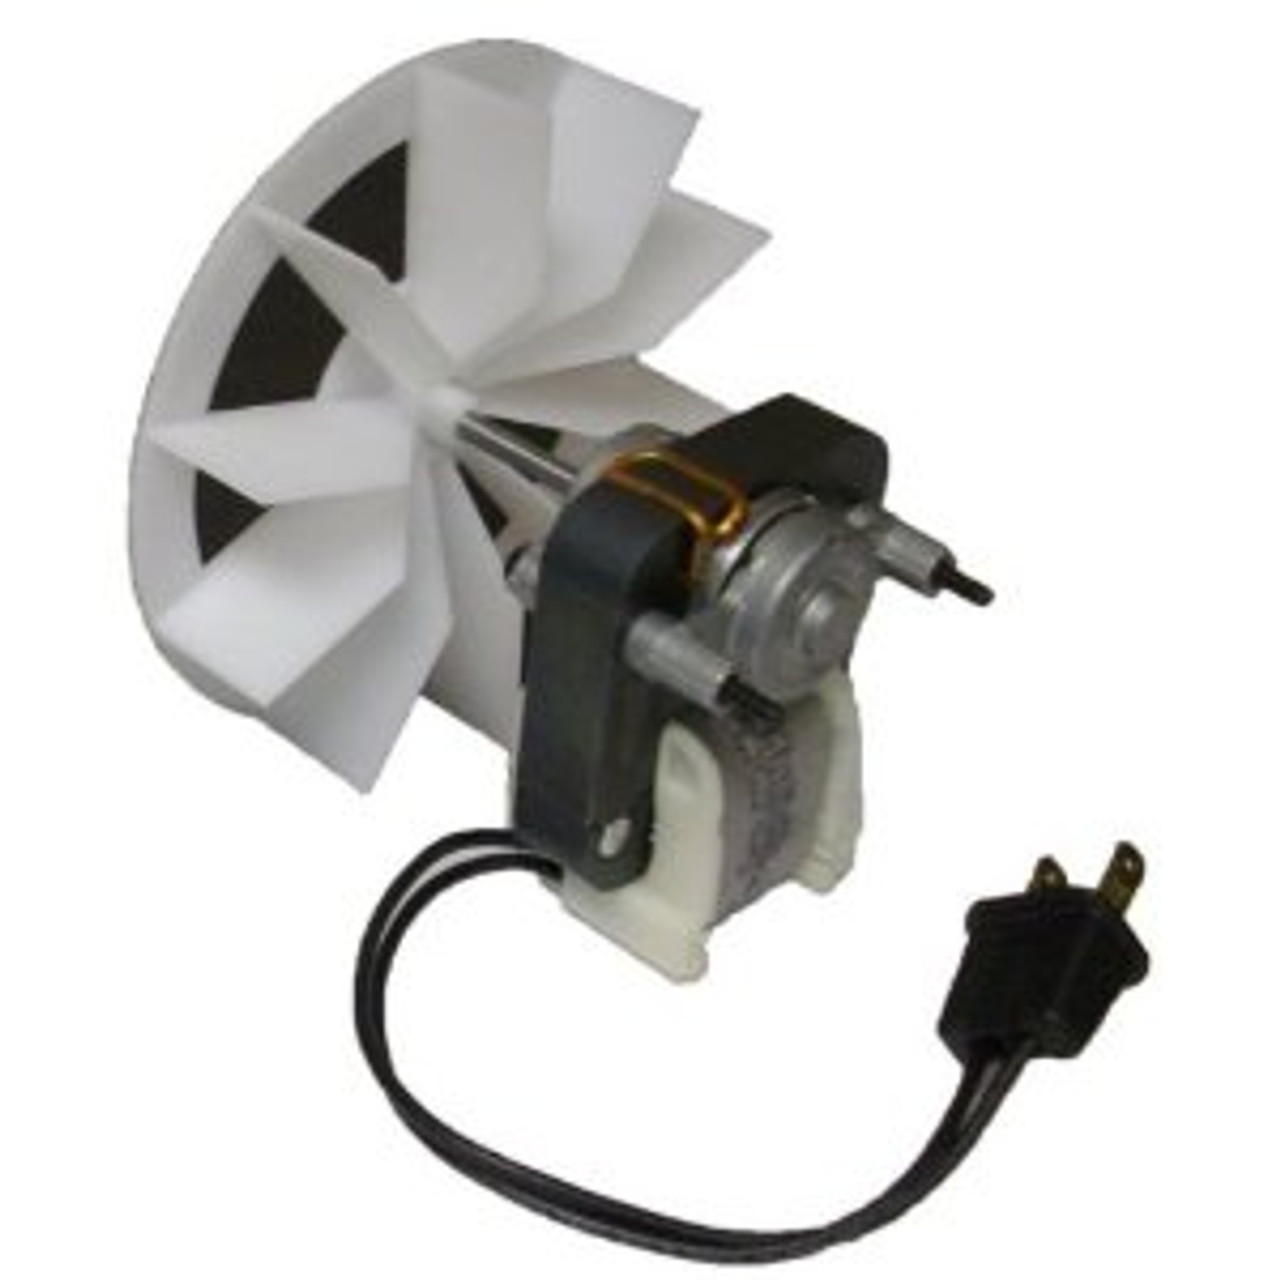 97012039 Broan/Nutone Electric Motor and Fan Assembly